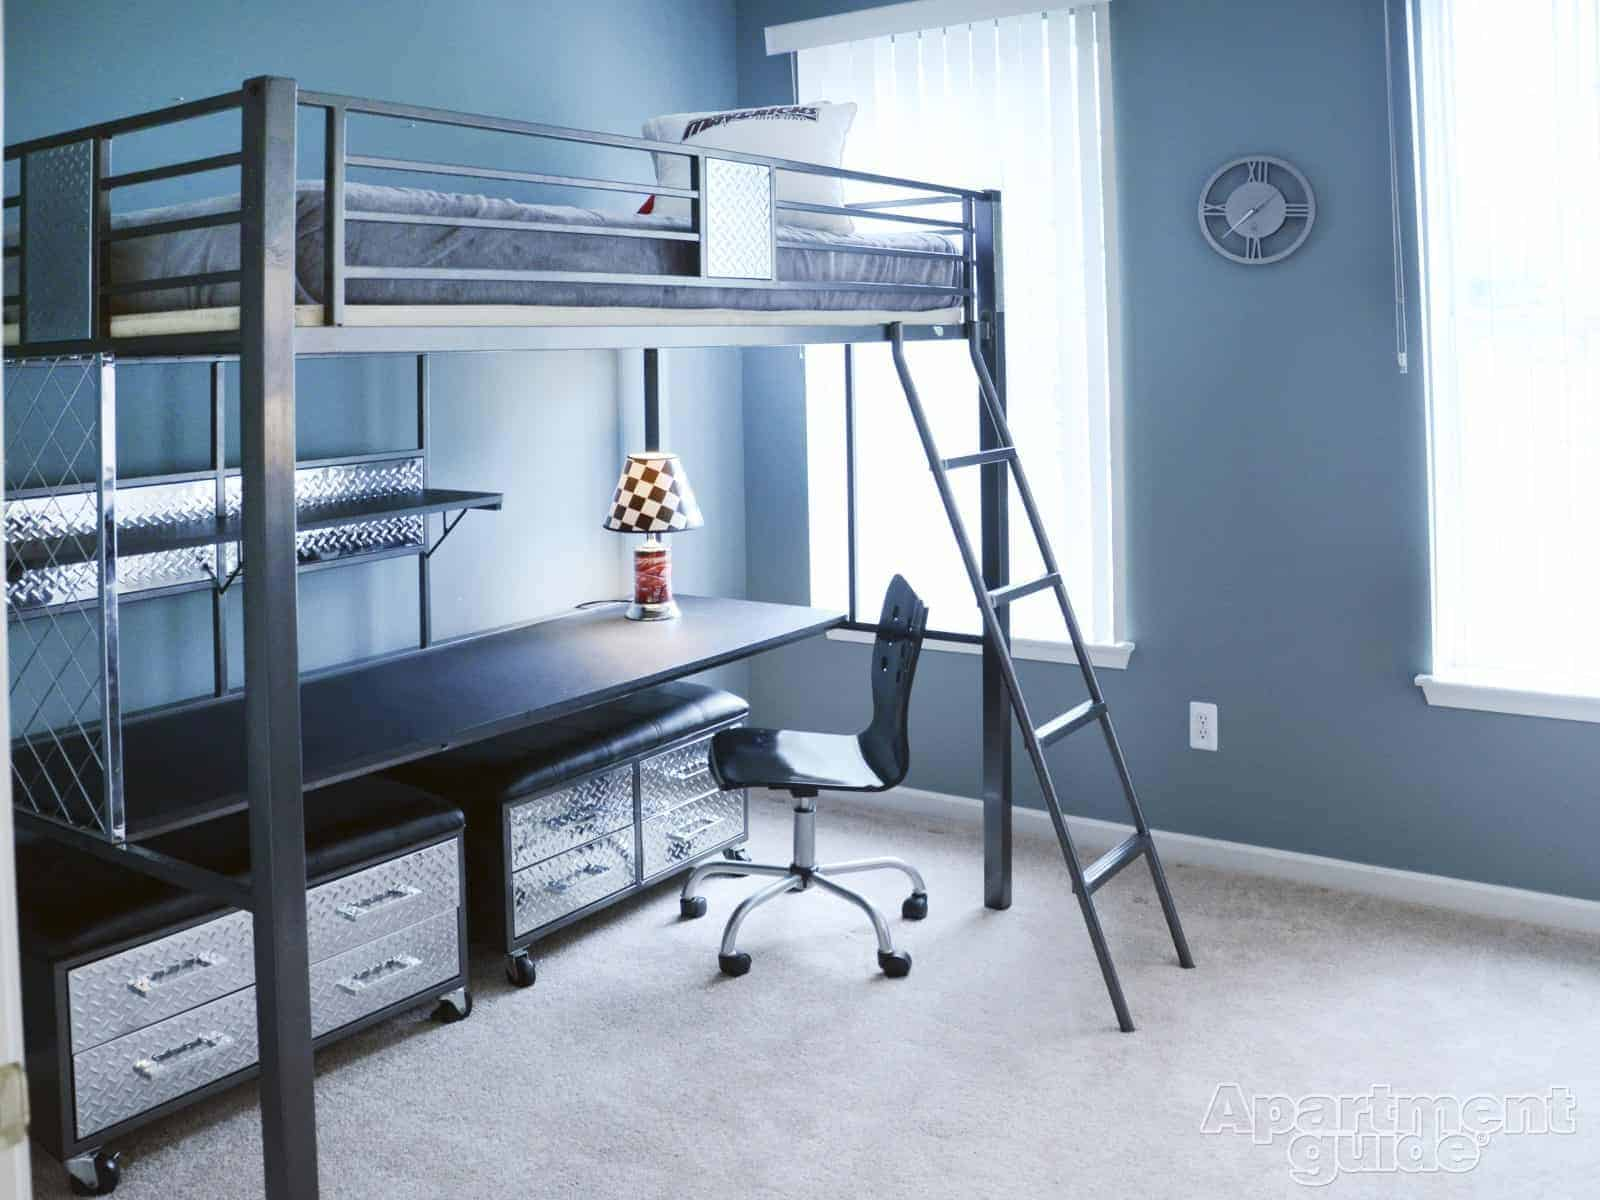 Multipurpose Furniture Packs a One-Two Punch | ApartmentGuide.com